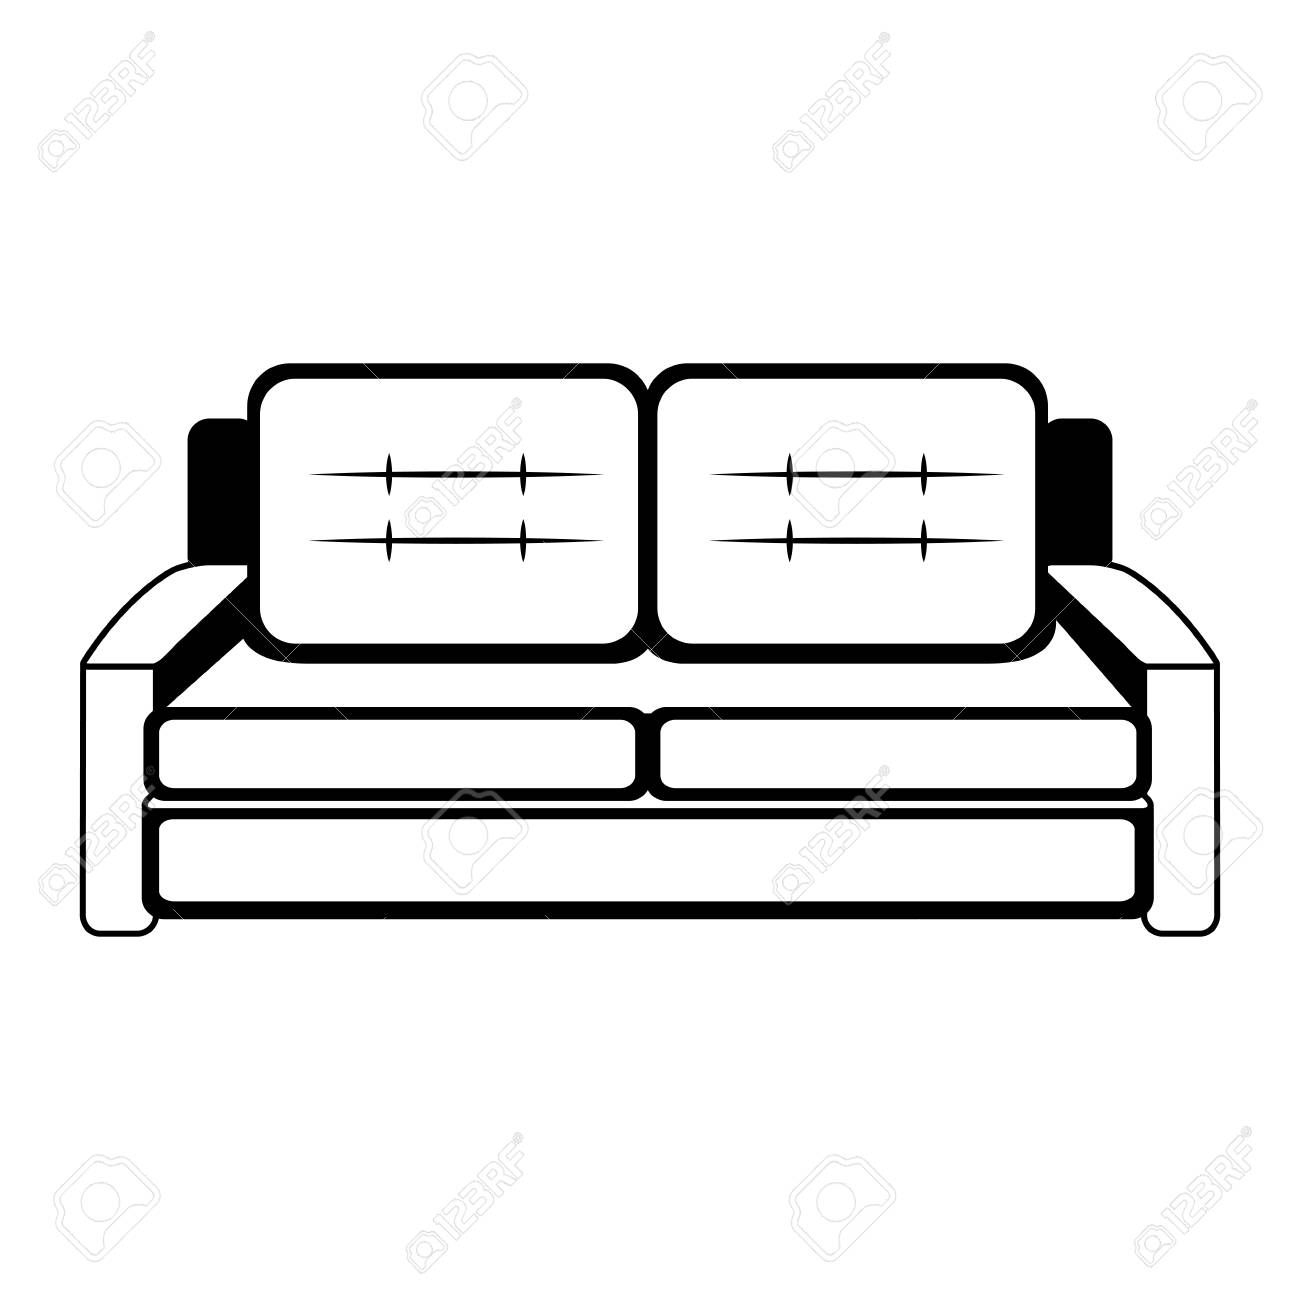 Sofa Furniture Isolated Vector Illustration Graphic Design Royalty